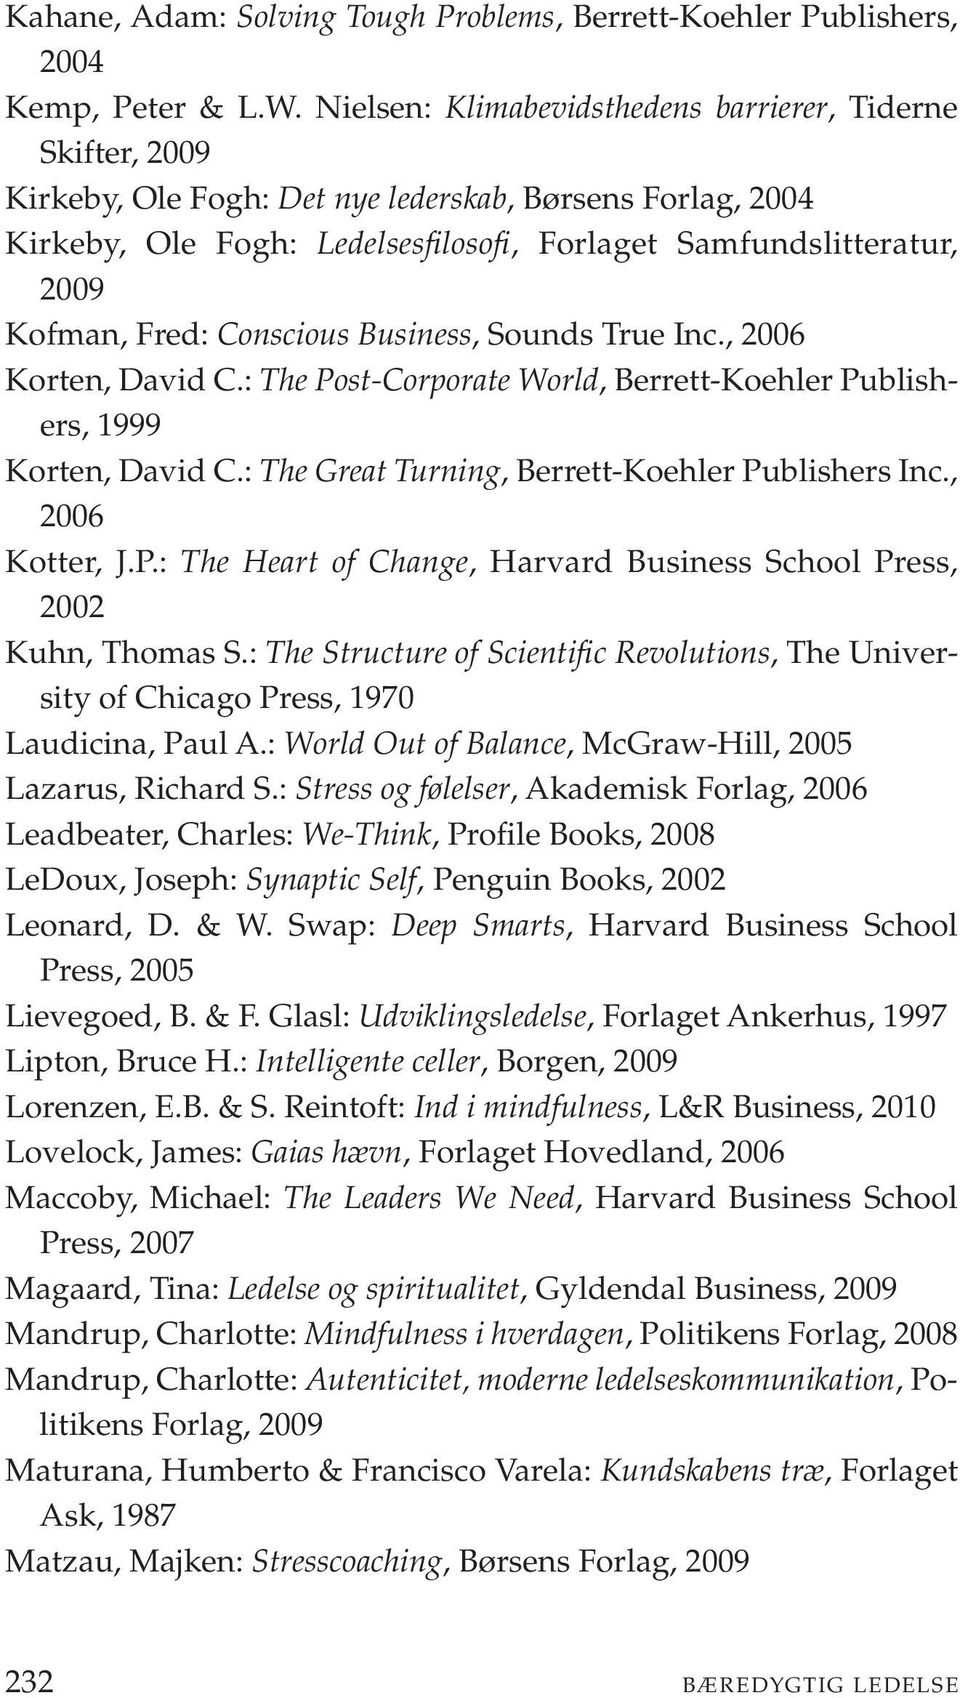 Fred: Conscious Business, Sounds True Inc., Korten, David C.: The Post-Corporate World, Berrett-Koehler Publishers, 1999 Korten, David C.: The Great Turning, Berrett-Koehler Publishers Inc.